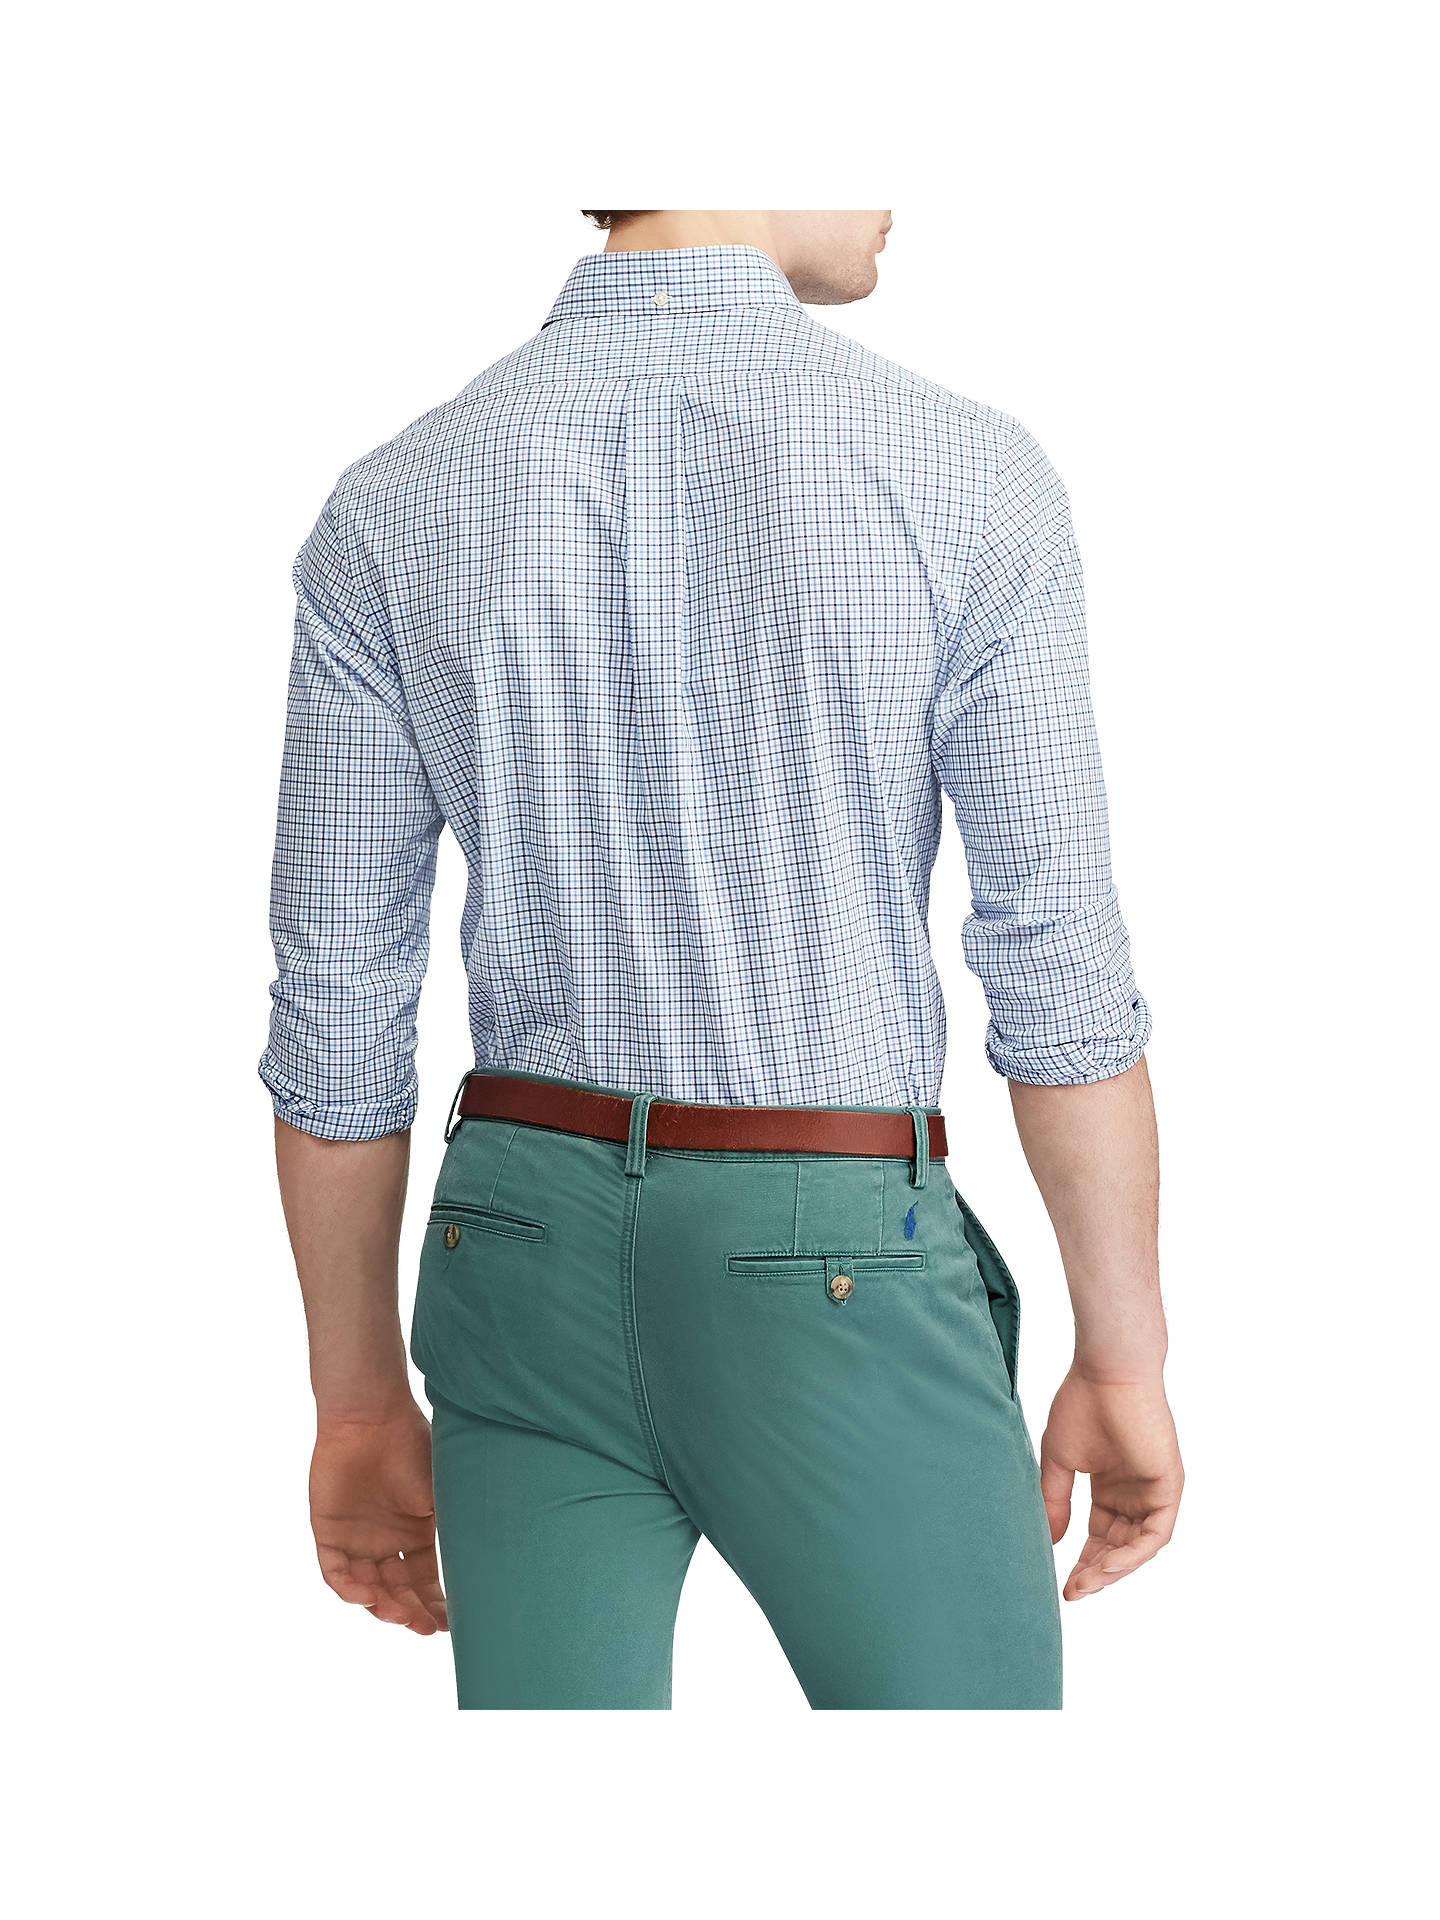 Buy Polo Ralph Lauren Long Sleeve Check Shirt, Blue, S Online at johnlewis.com